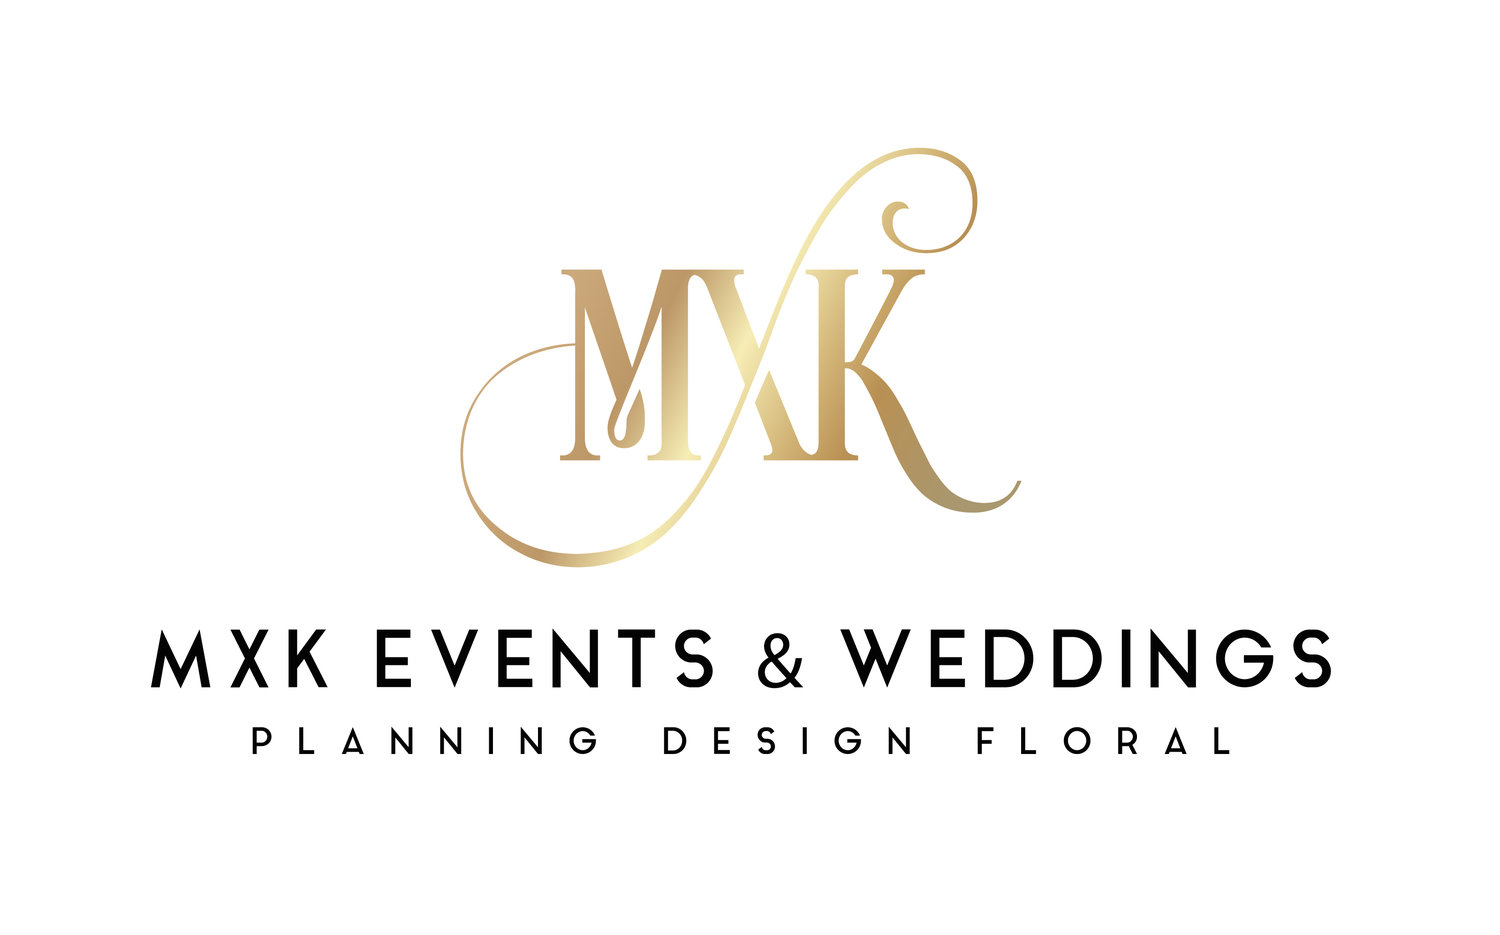 MXK Events